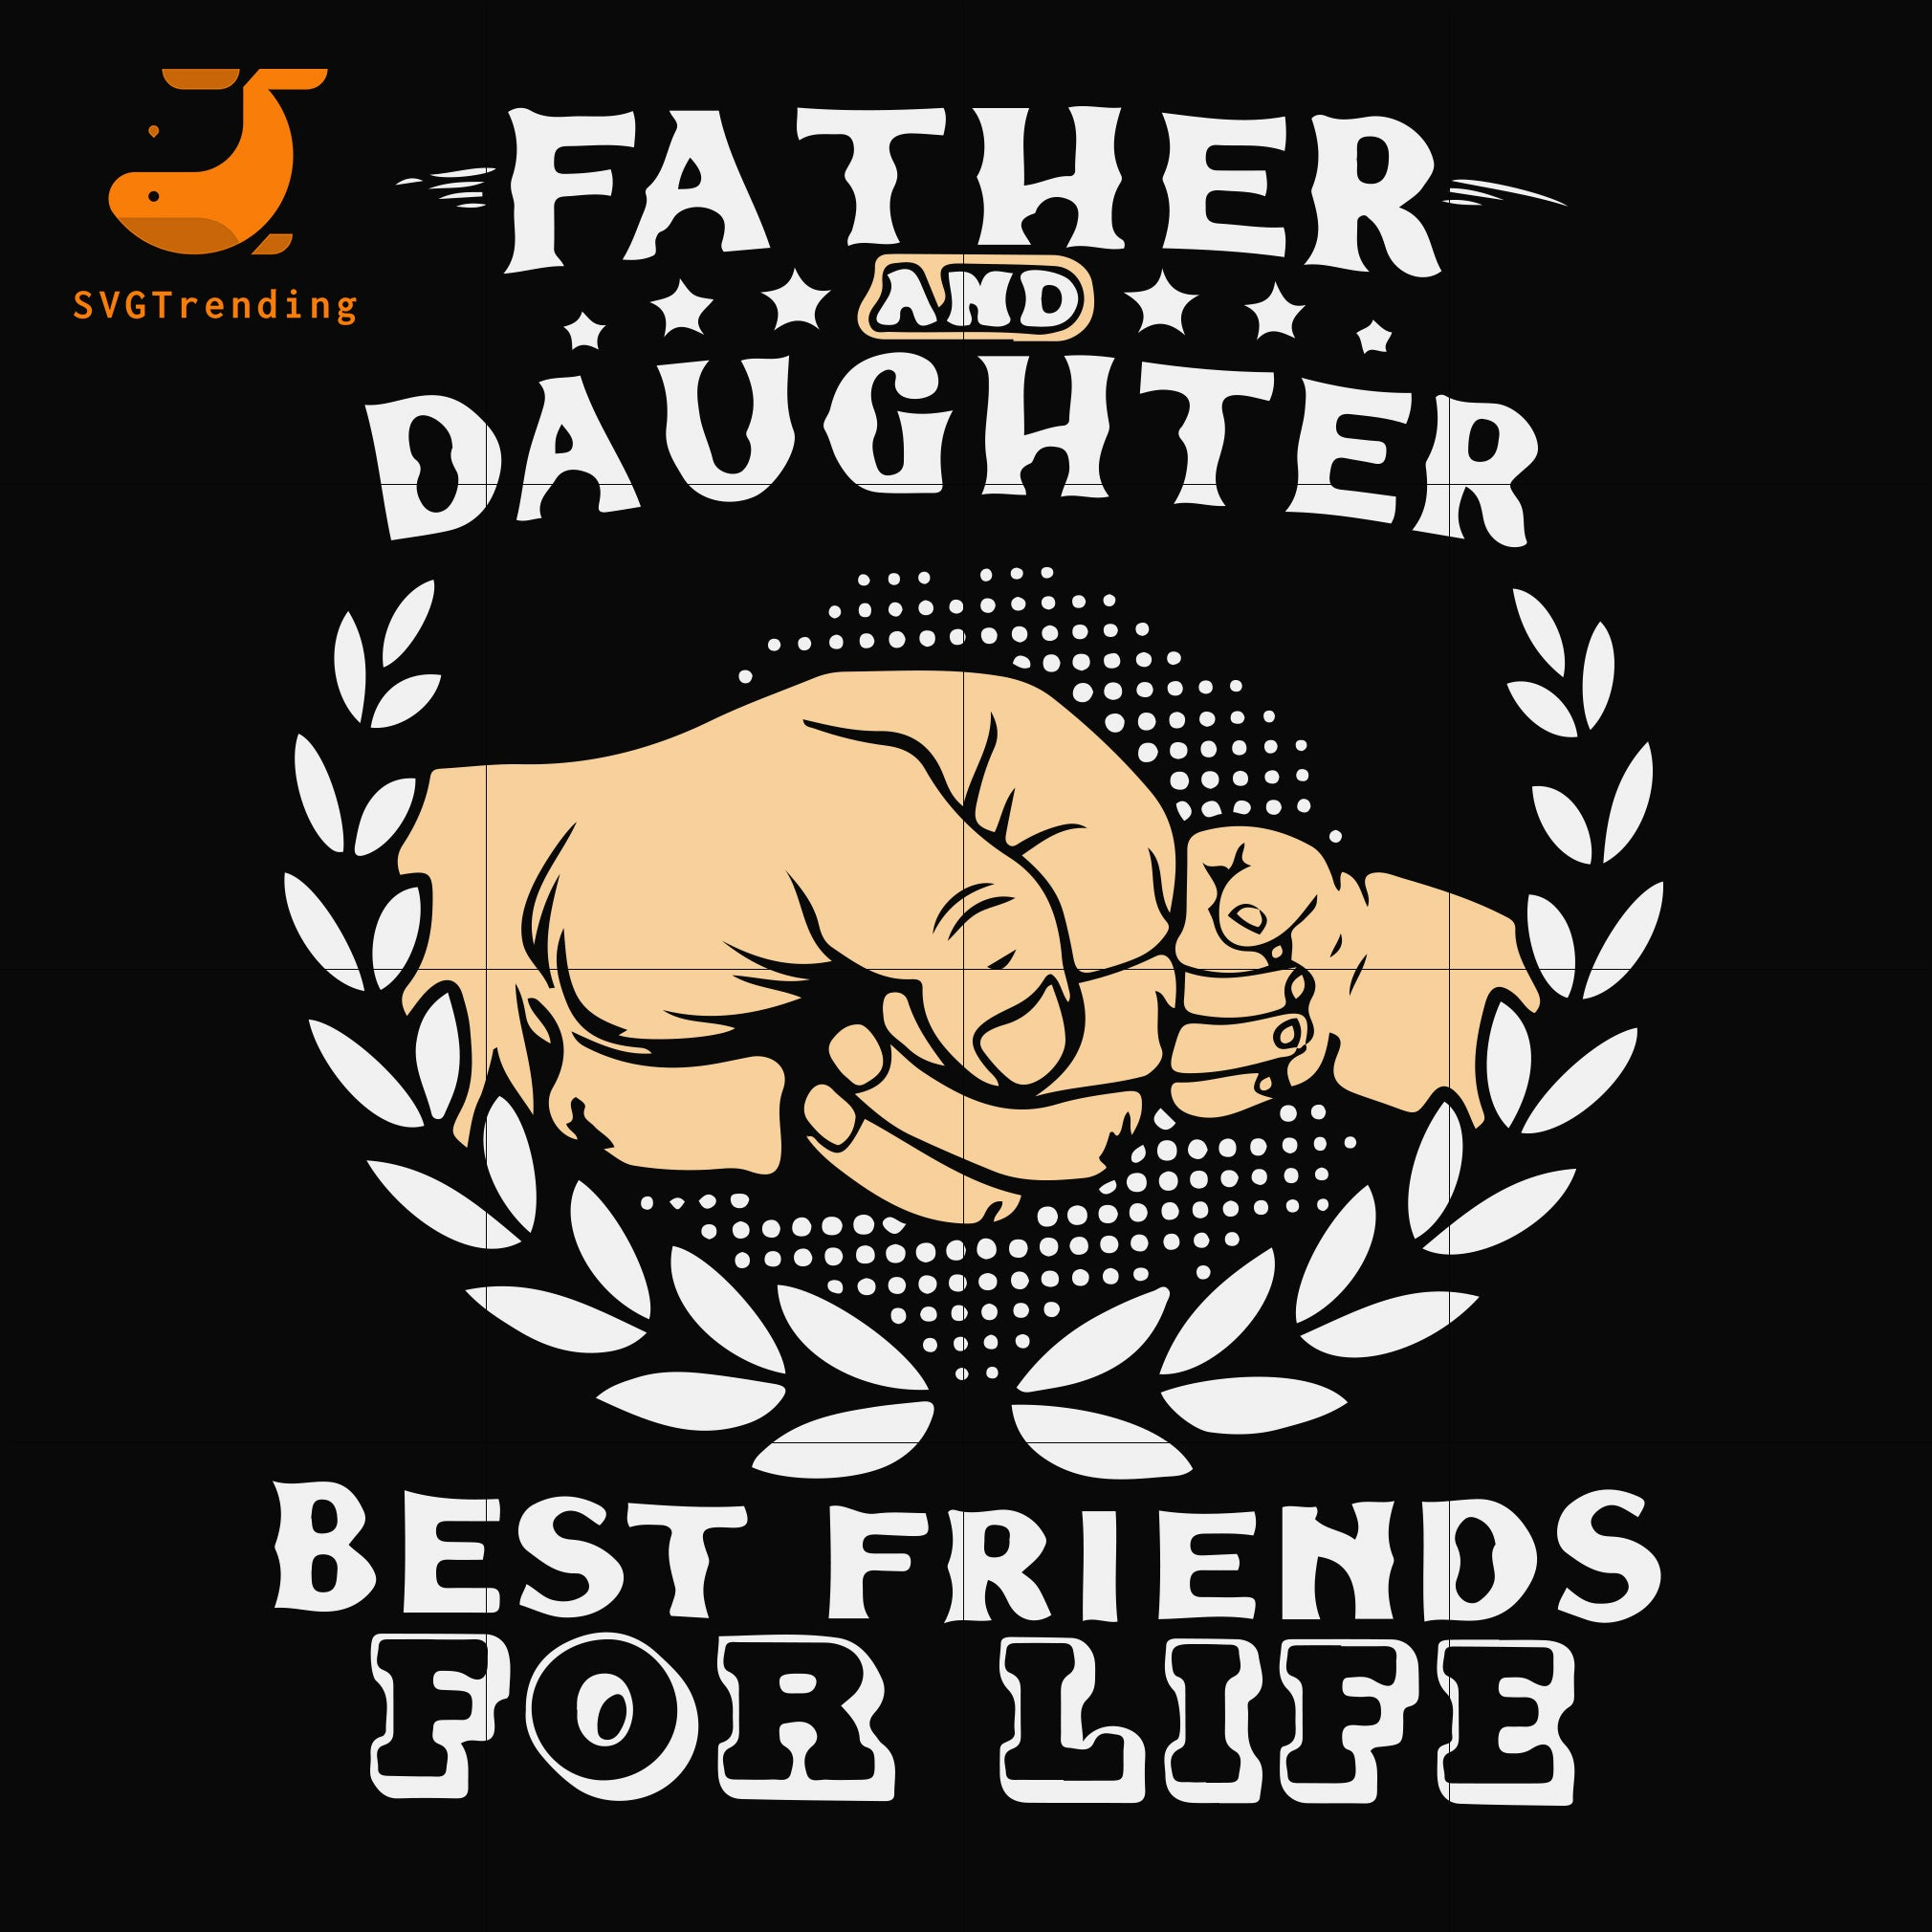 father and daughter best friend for life svg, png, dxf, eps, digital file FTD26